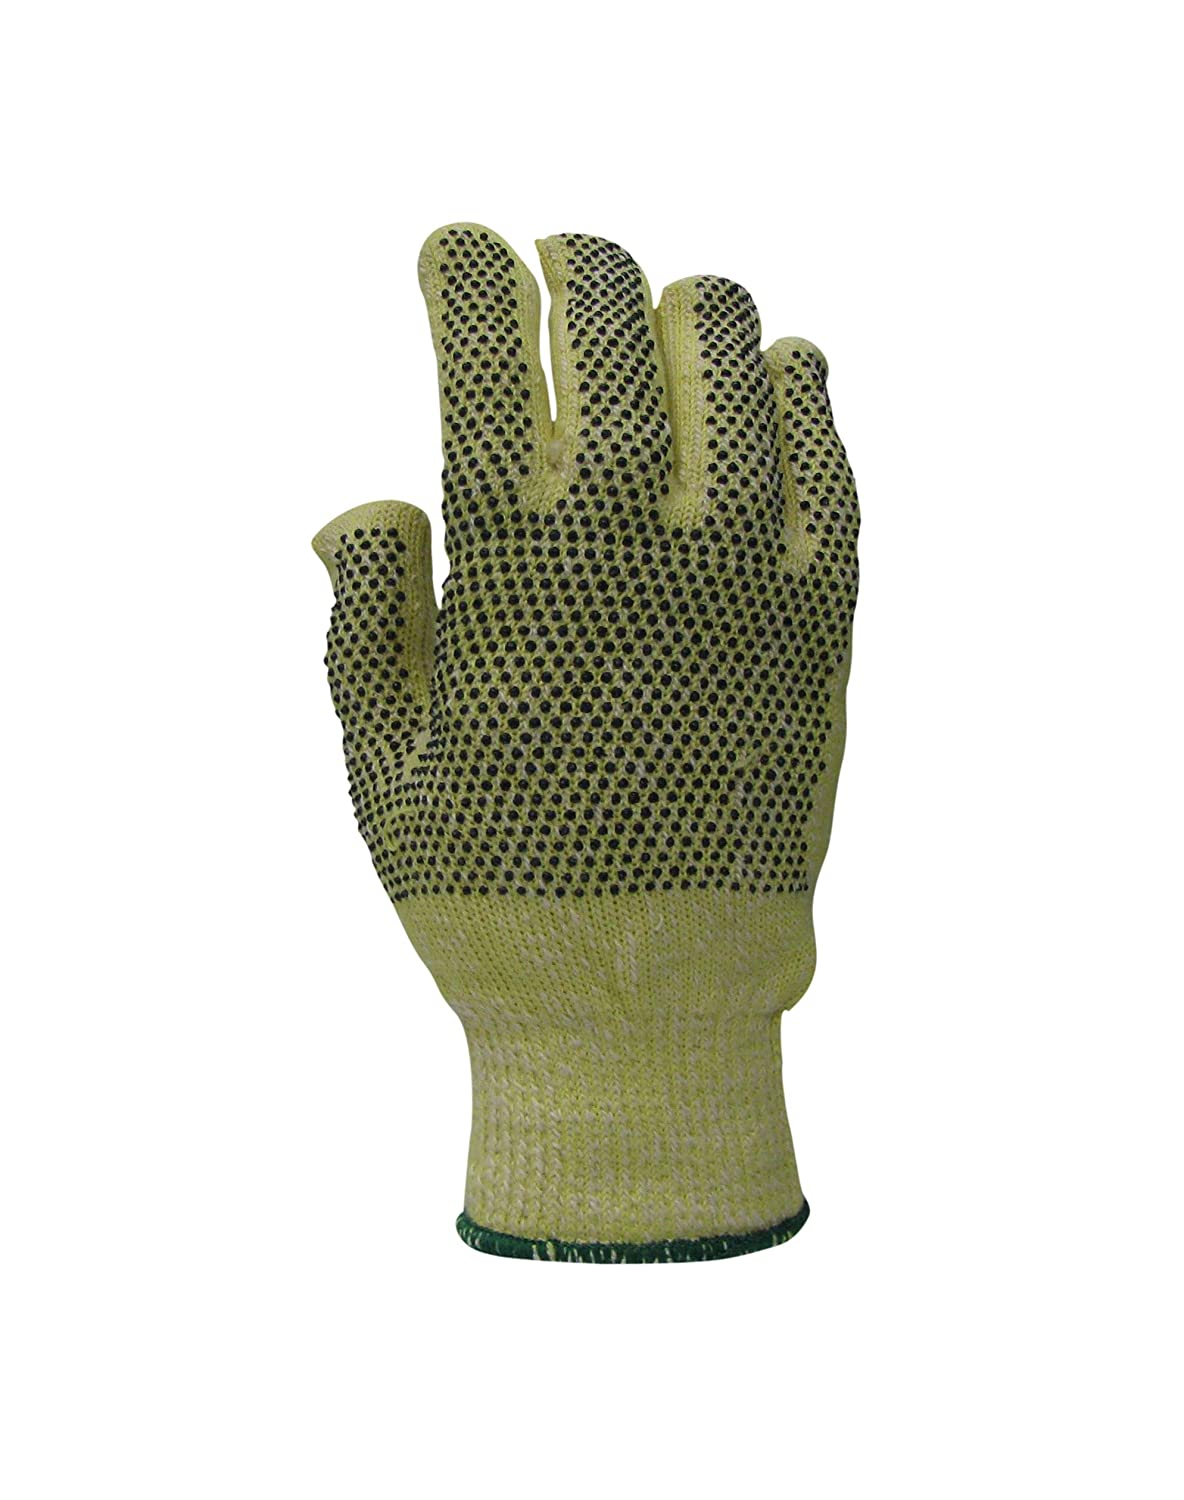 7 Pack of 12 Magid Glove /& Safety NT73BKVPR-7 Nitrile-Dotted para-Aramid Blend Terry Glove Yellow